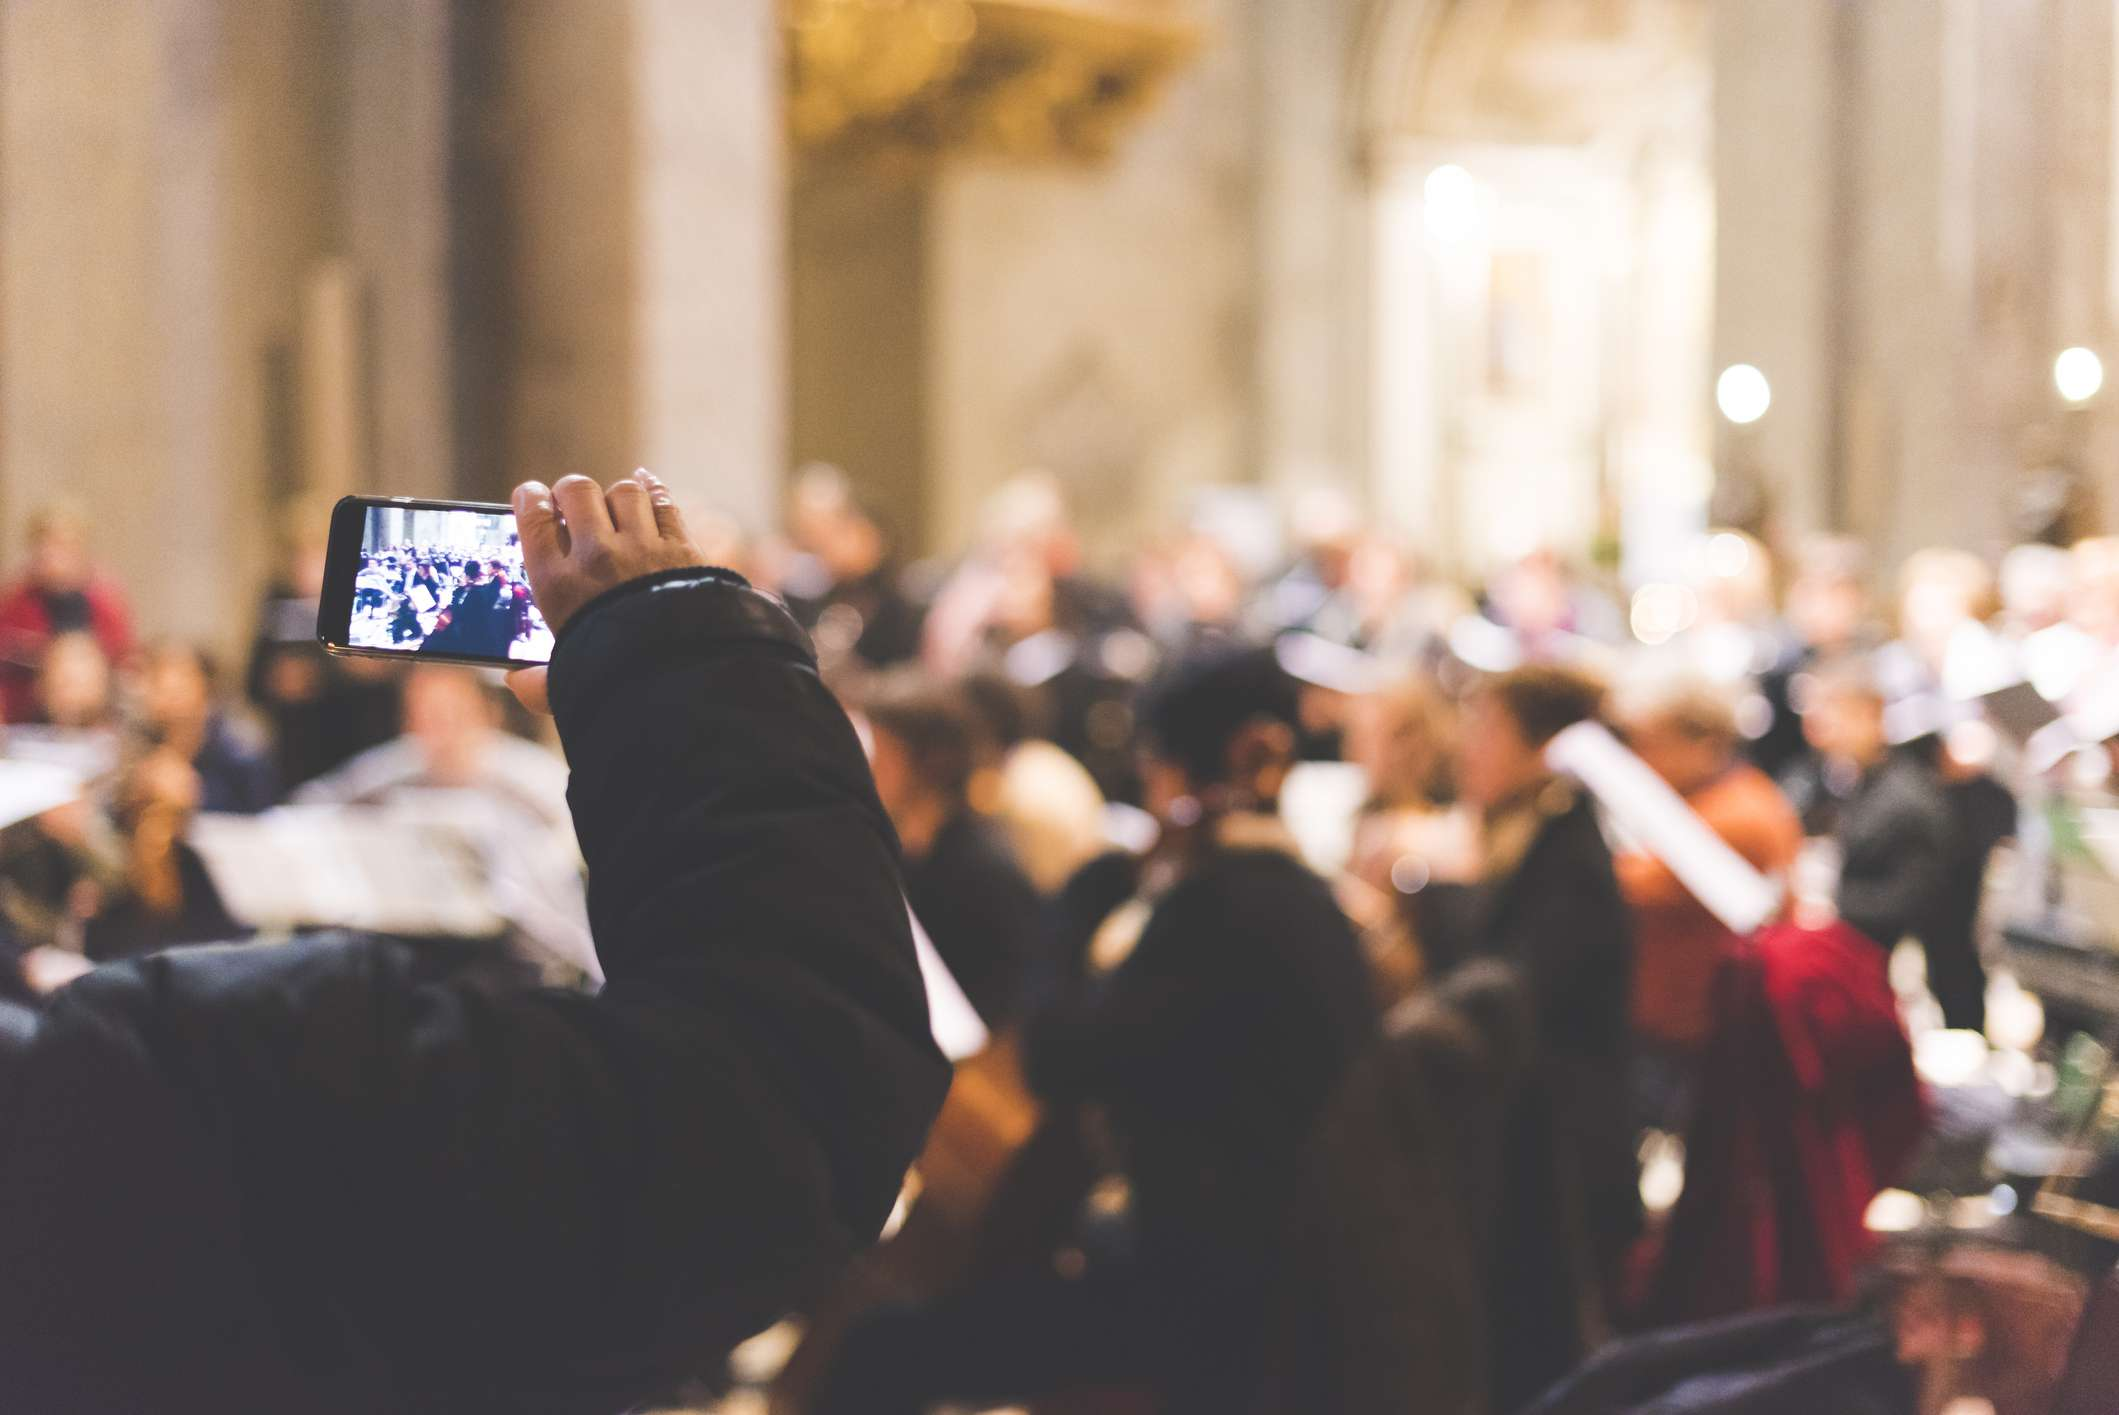 Person recording an orchestra on a smartphone